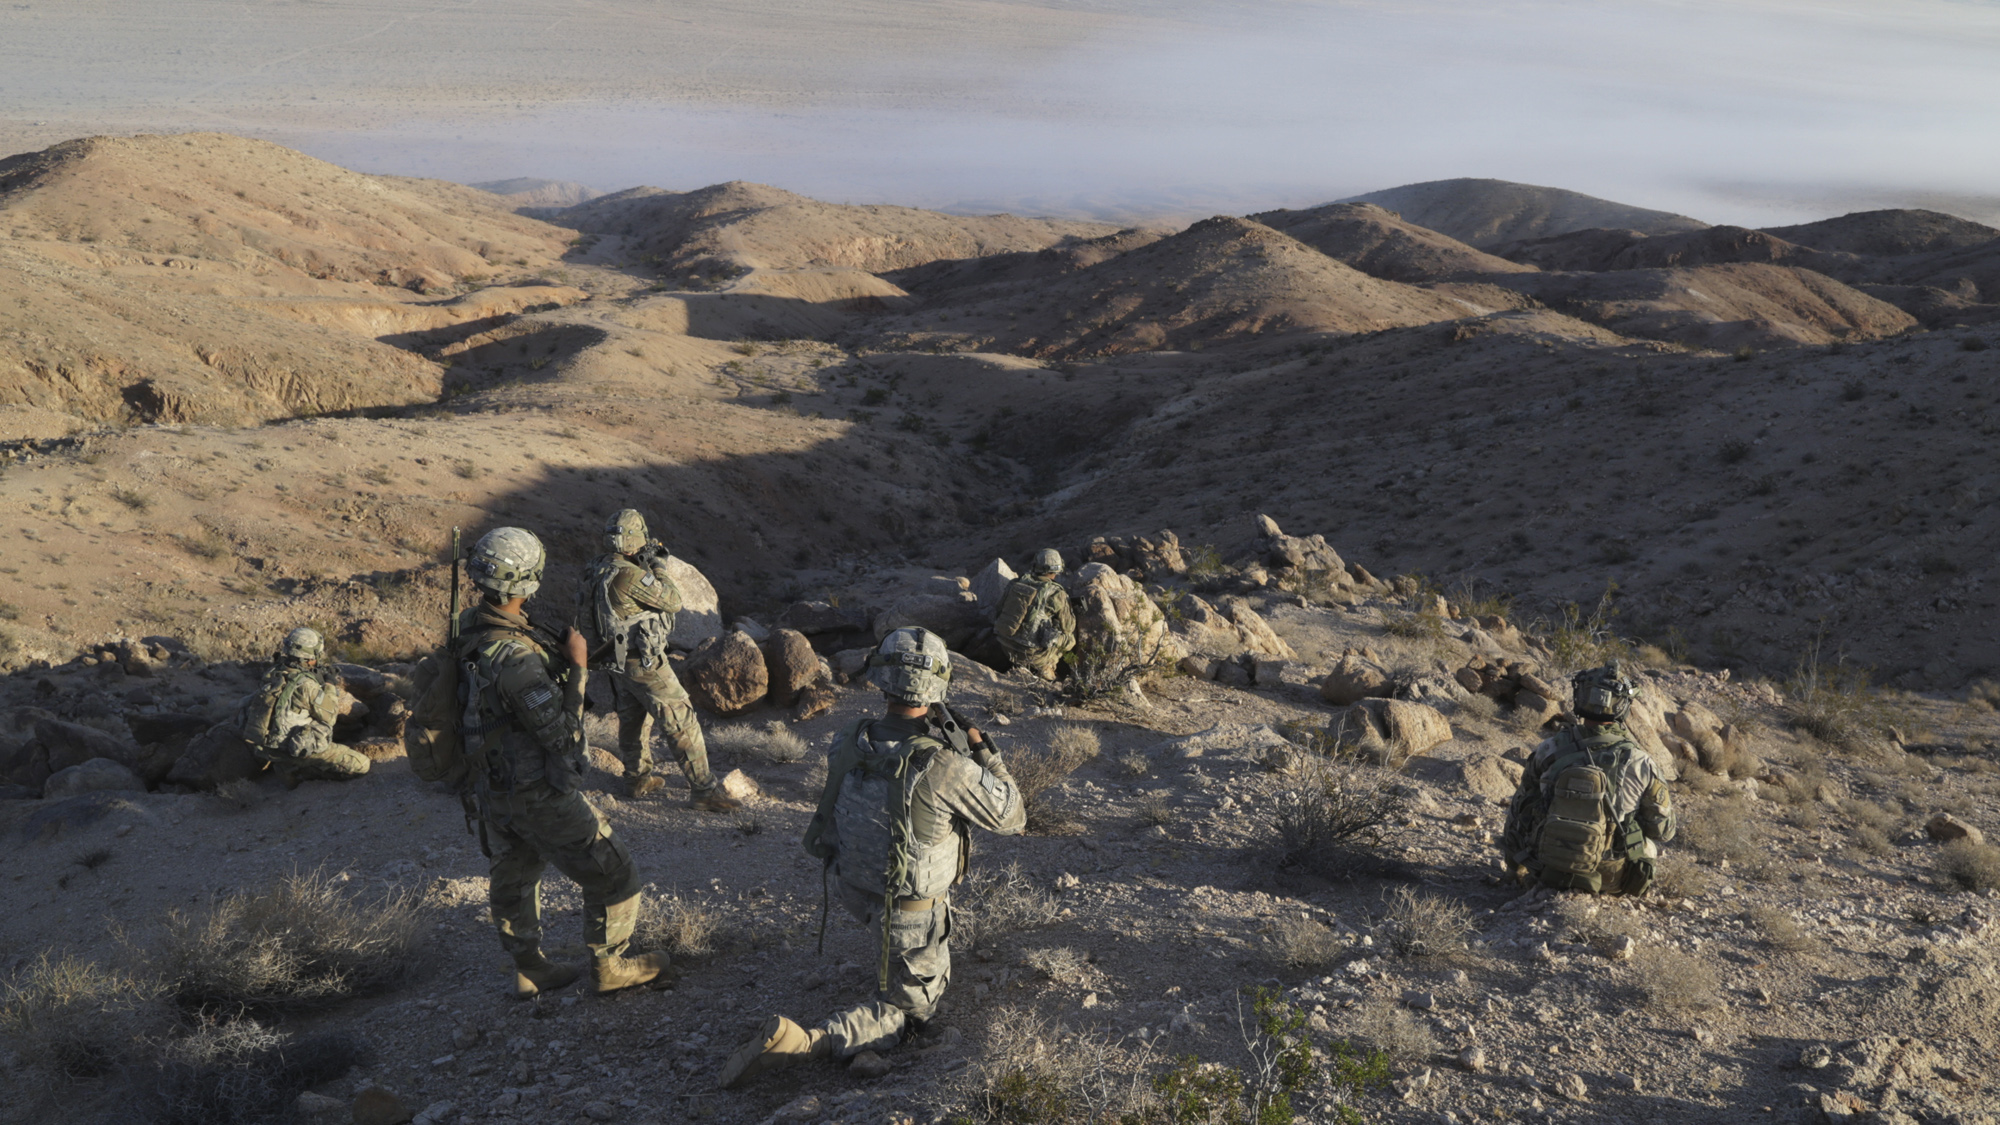 Soldiers assigned to 1st Brigade Combat Team, 1st Armored Division scan for potential enemies during Decisive Action Rotation 17-02 at the National Training Center on Fort Irwin, California in November 2016. The Army's Talent Management Task Force is piloting several initiatives to move from an industrial-age system where Soldiers were viewed as interchangeable parts to a modern 21st-century system managing individual knowledge, skills and behaviors shaped over a lifetime. (Photo by Spc. Michael Crews, National Training Center Operations Group)